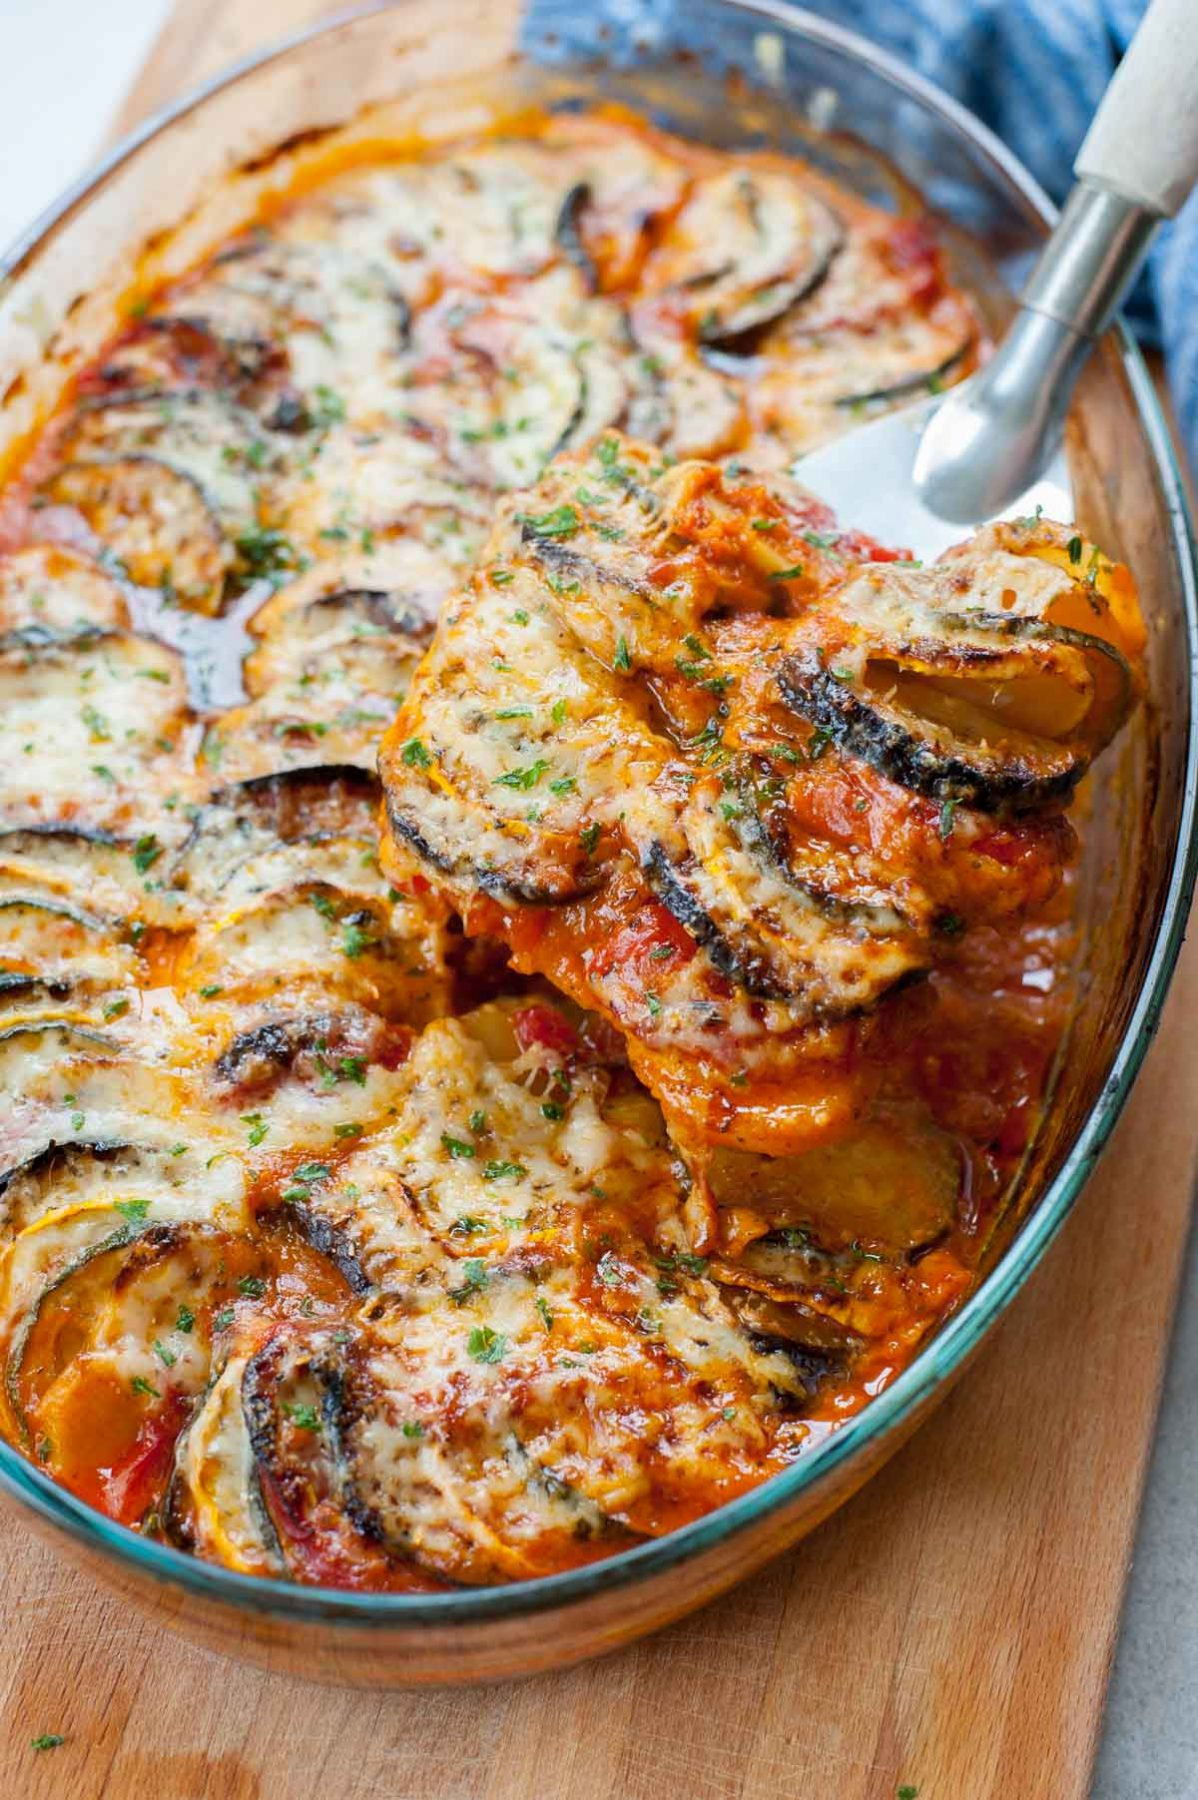 baked ratatouille in a baking dish being scooped with a metal spatula